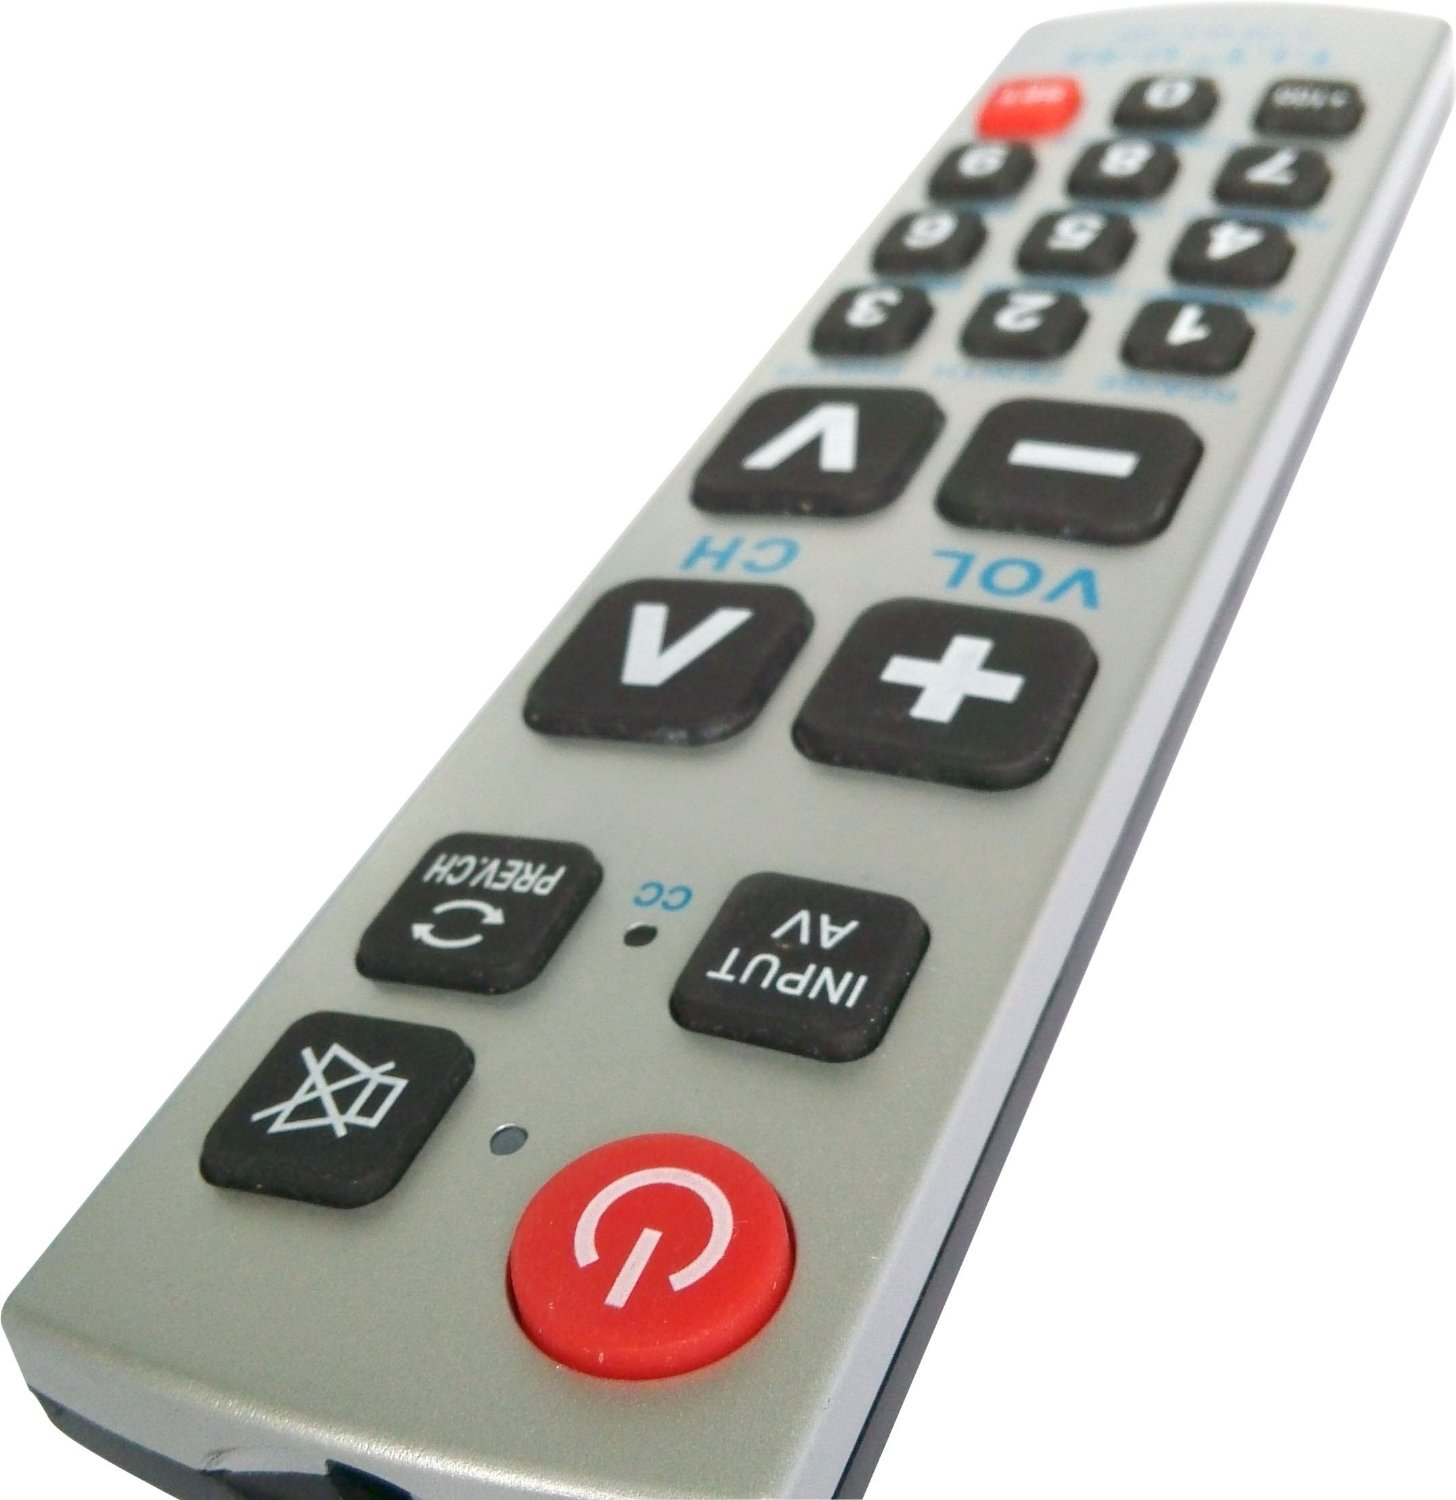 Big Buttton Remote Controls